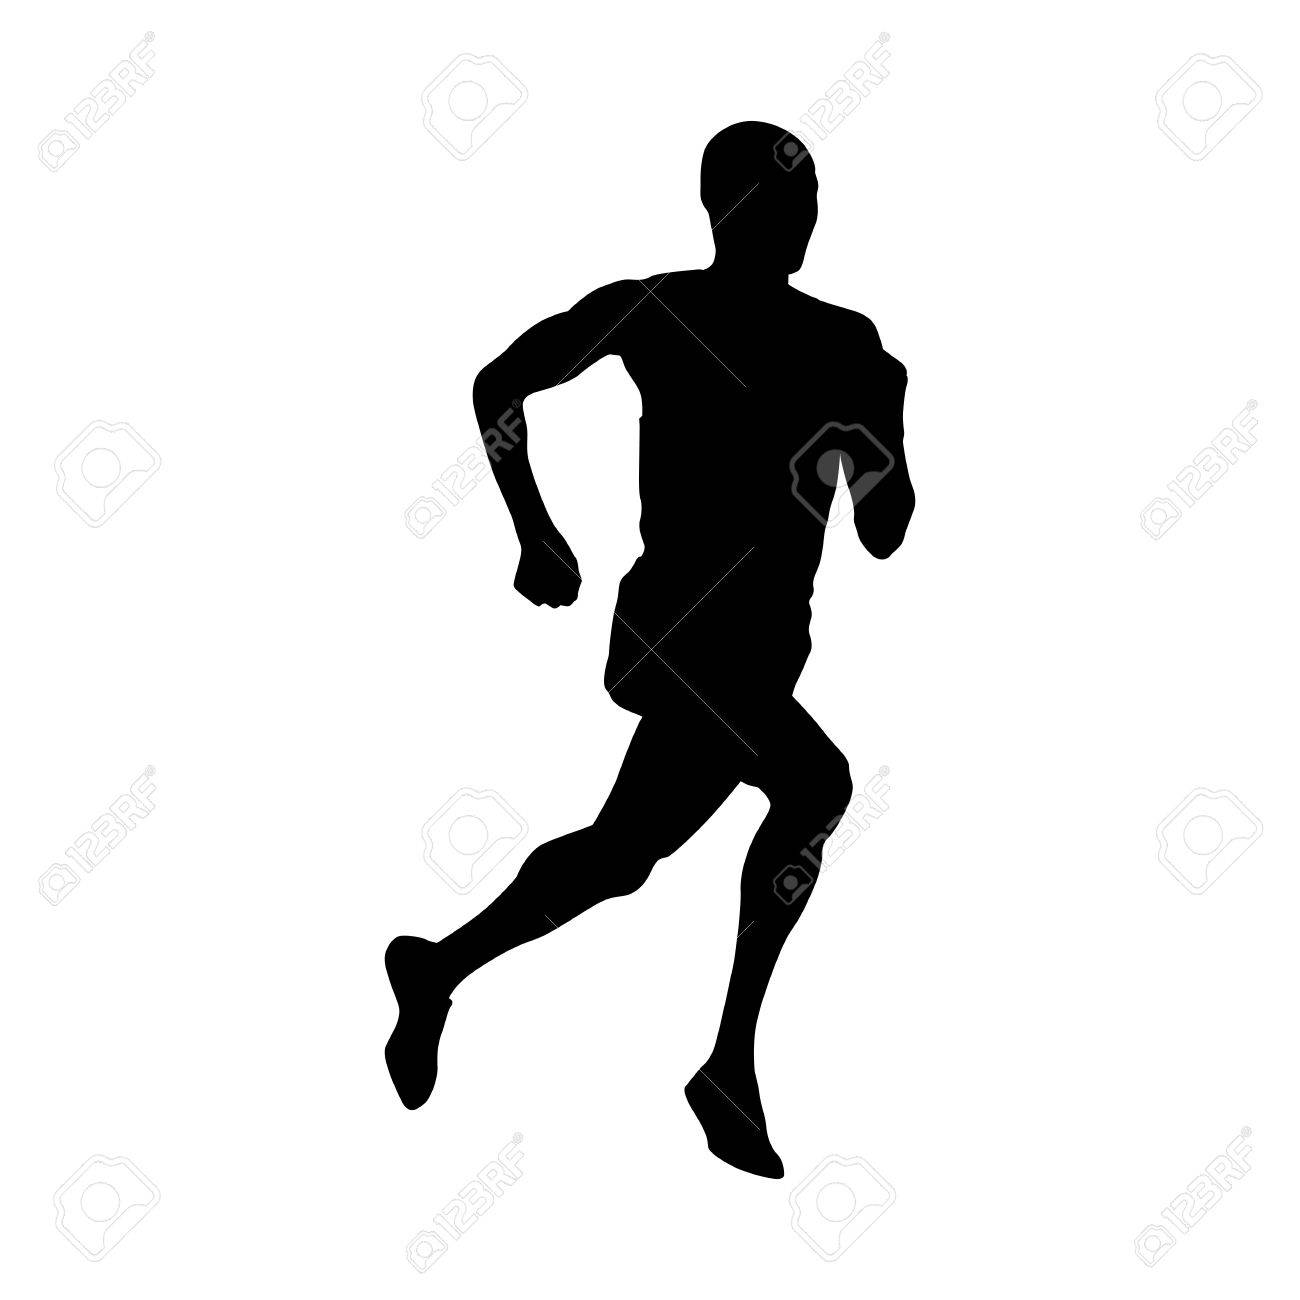 runner vector silhouette royalty free cliparts vectors and stock rh 123rf com runner vector png runner vector png